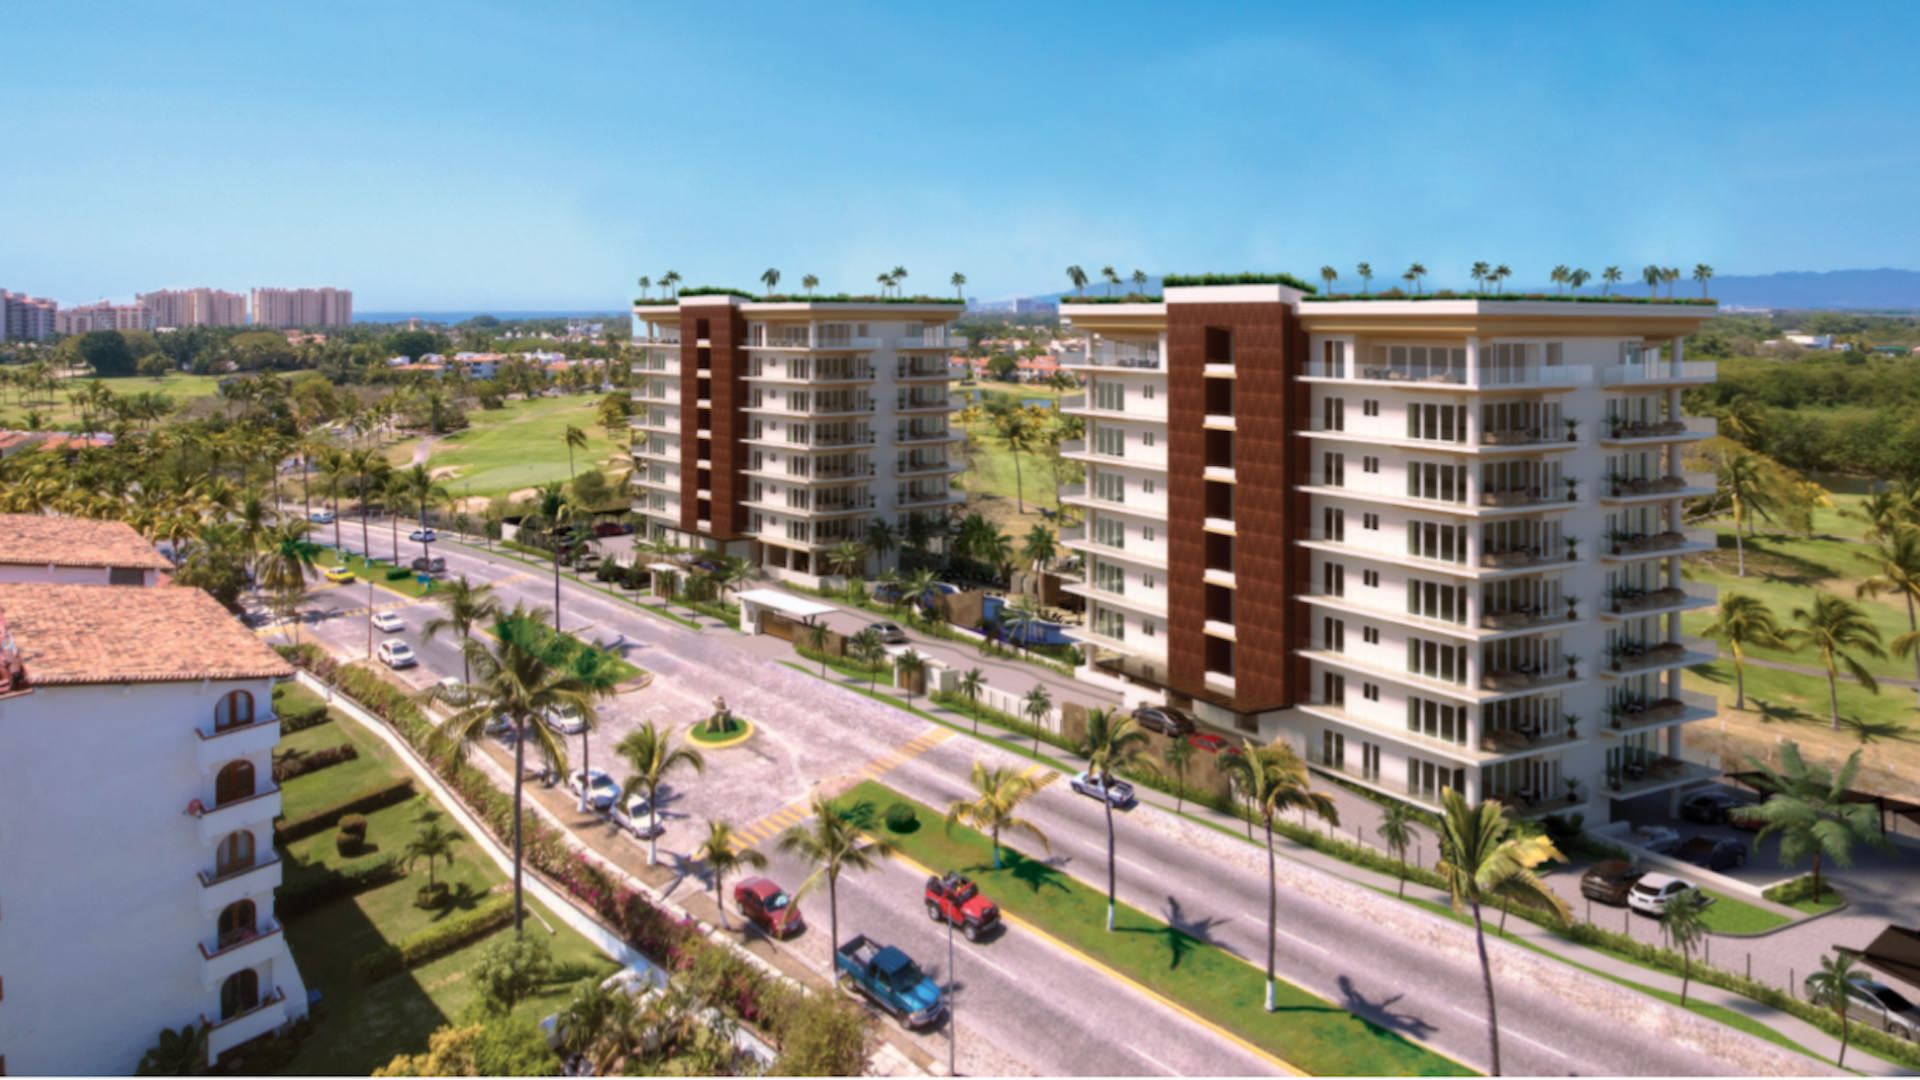 V Marina: Luxury Condos For Sale in Marina Vallarta